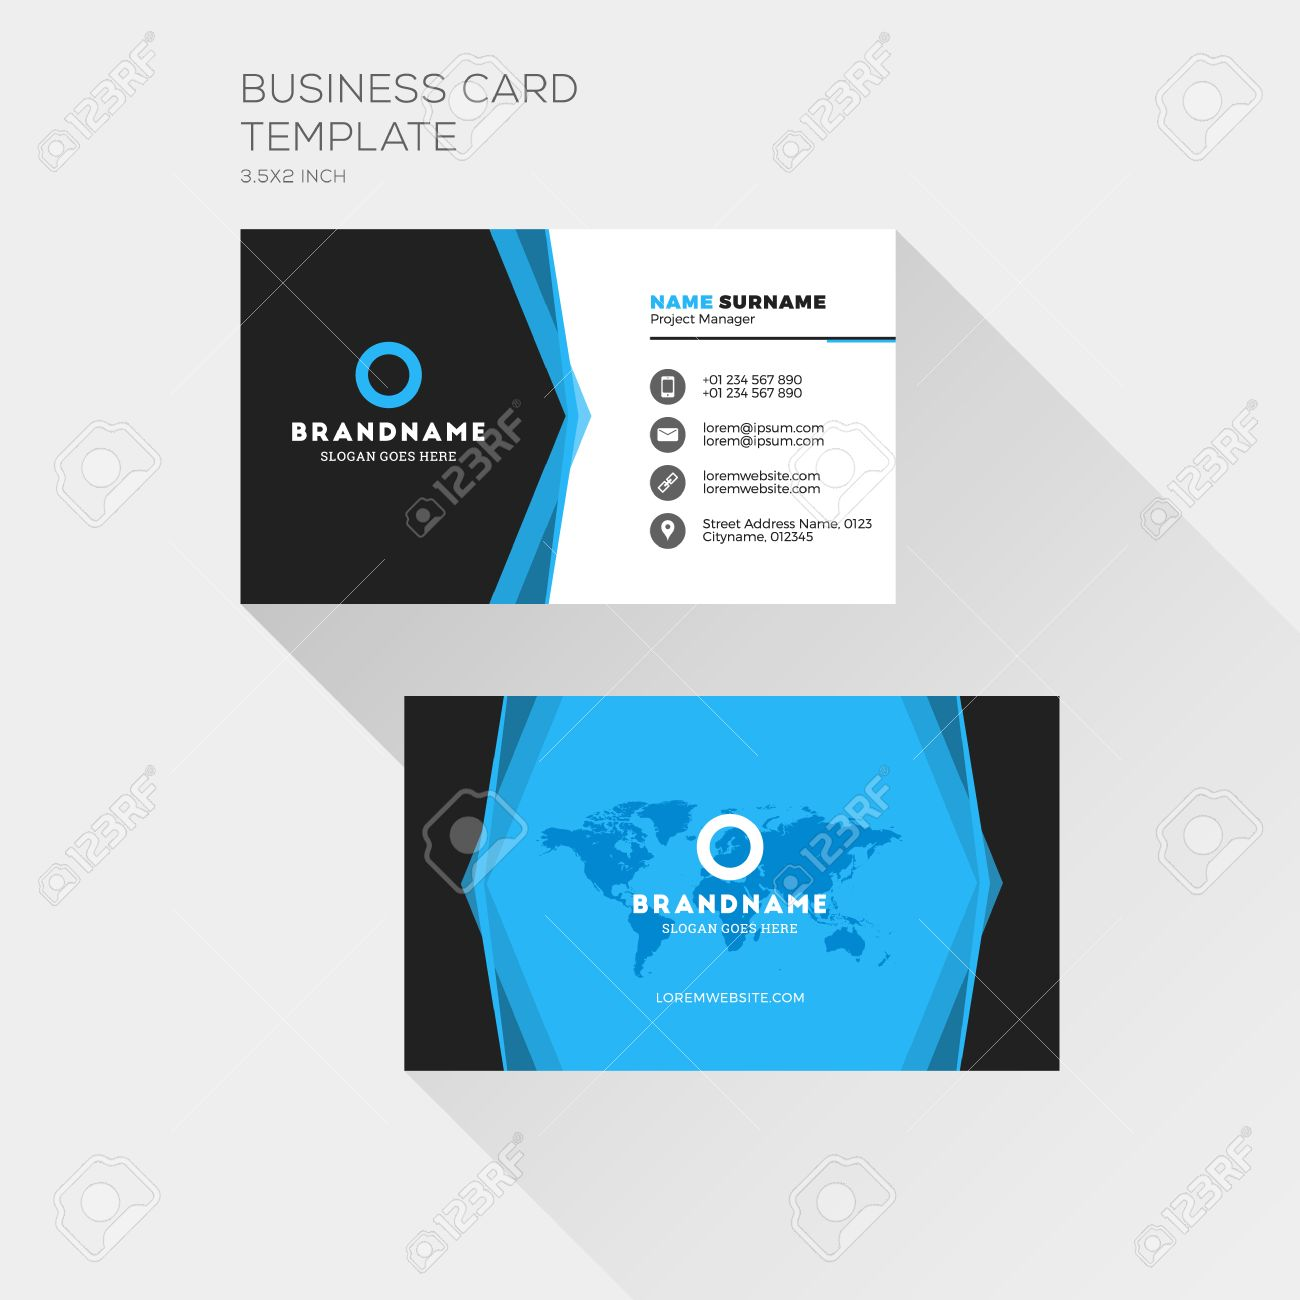 Business card printing singapore tampines gallery card design and business card printing singapore tampines gallery card design and business card printing singapore tampines images card reheart Image collections